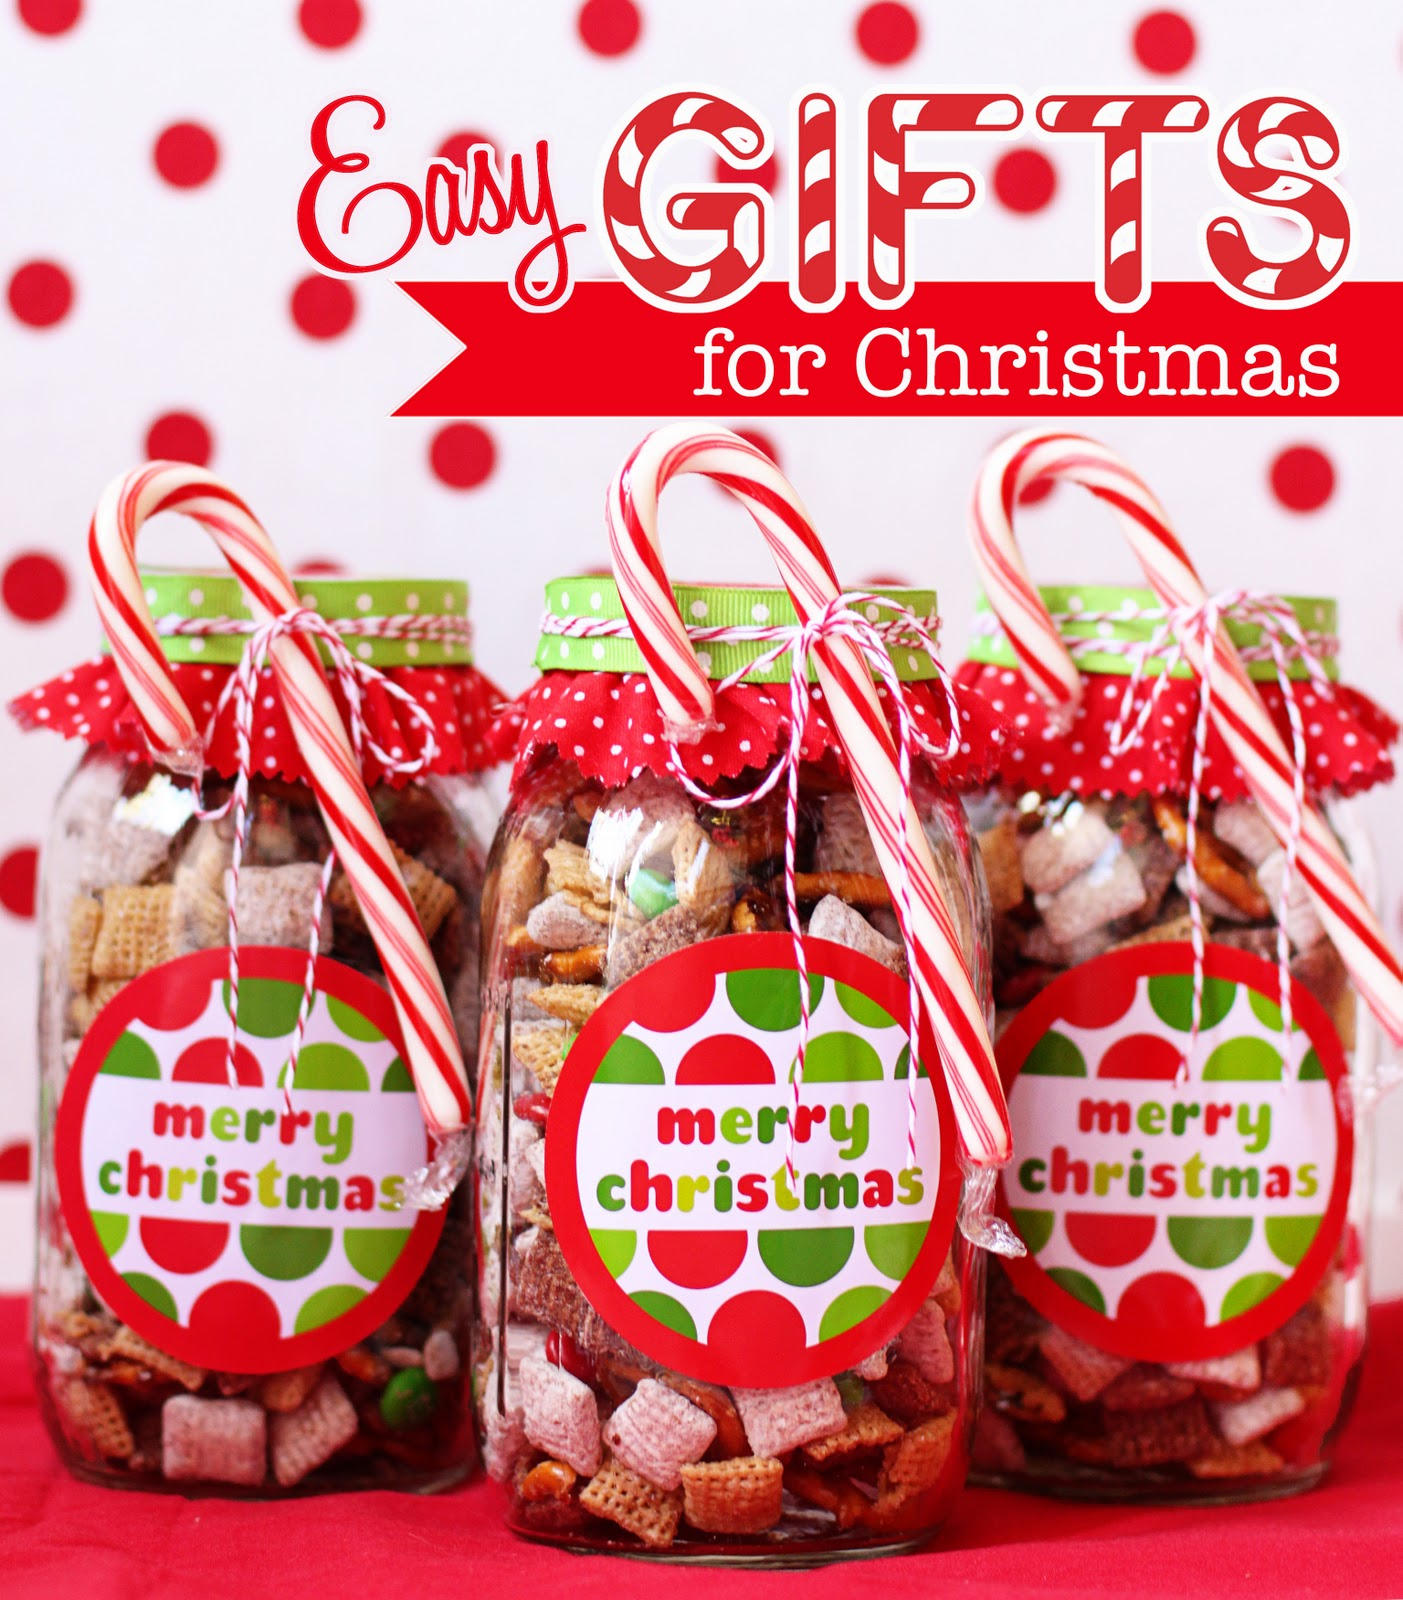 Save a buck or two diy gift jar ideas Christmas ideas for your mom